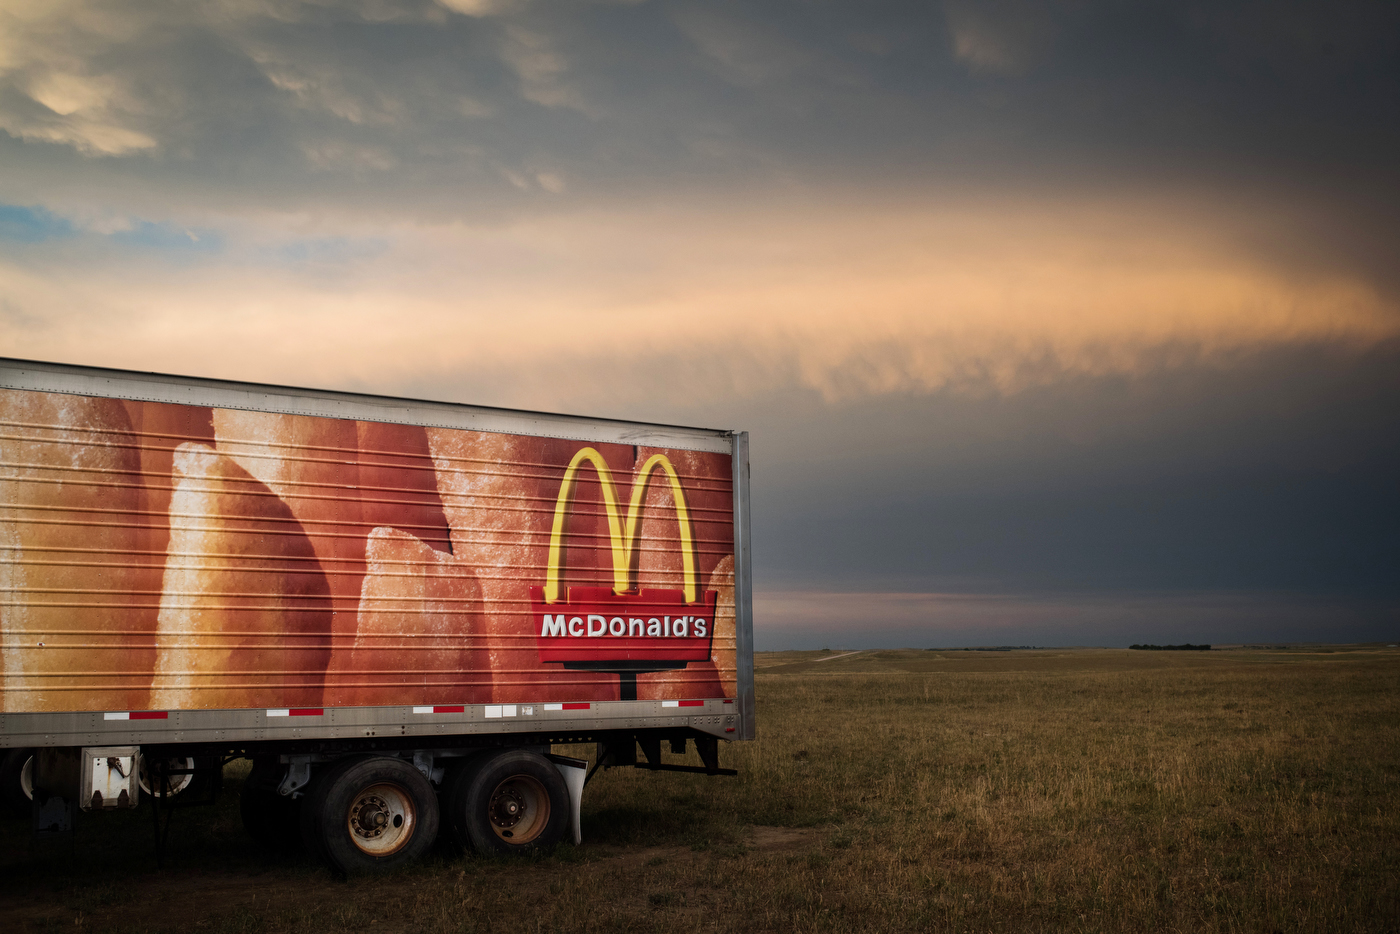 """45–31'48.6""""N 102º48'17.6""""W. 107 miles from the nearest McDonald's. A McDonalds trailer sits in a field outside in the small town of Prairie City, SD on July 31, 2017. Not far from the former McFarthest point in America, a local rancher bought two semi trailers for storage and left them in a field, one of which now acts as a reminder of the ubiquitous nature of corporate America."""